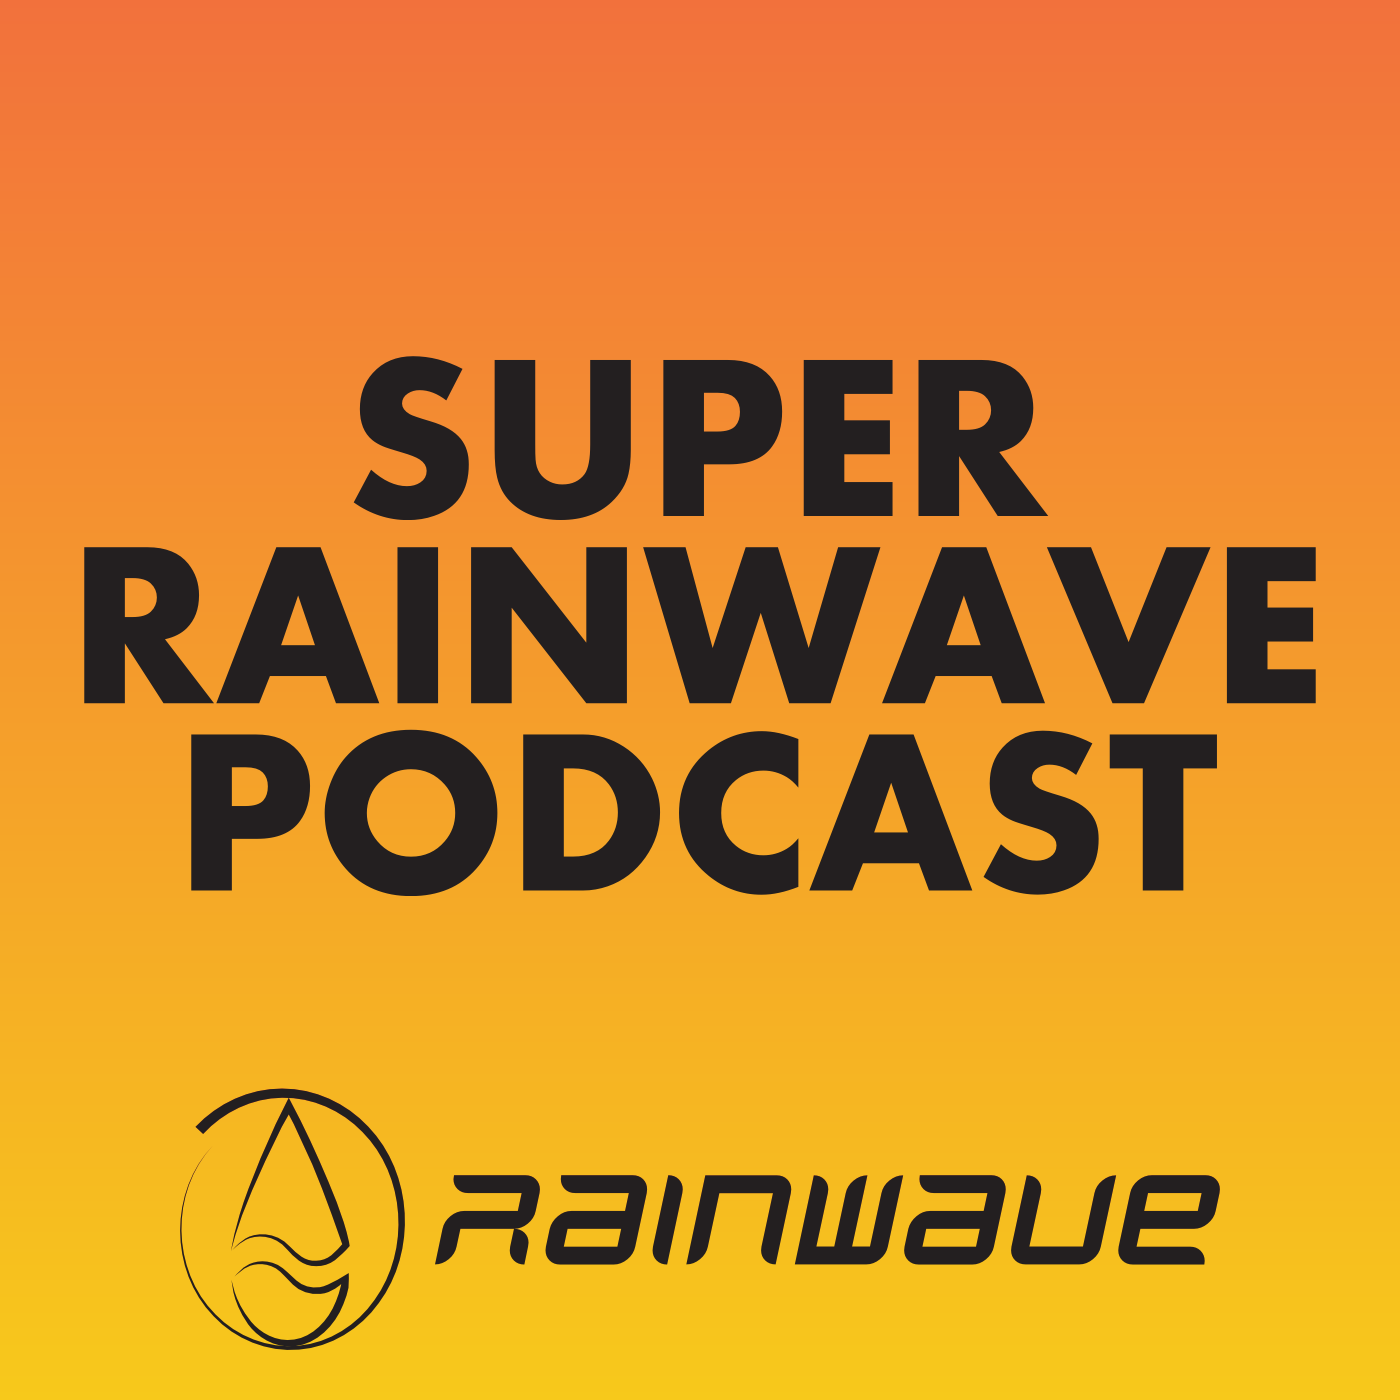 Super Rainwave Podcast